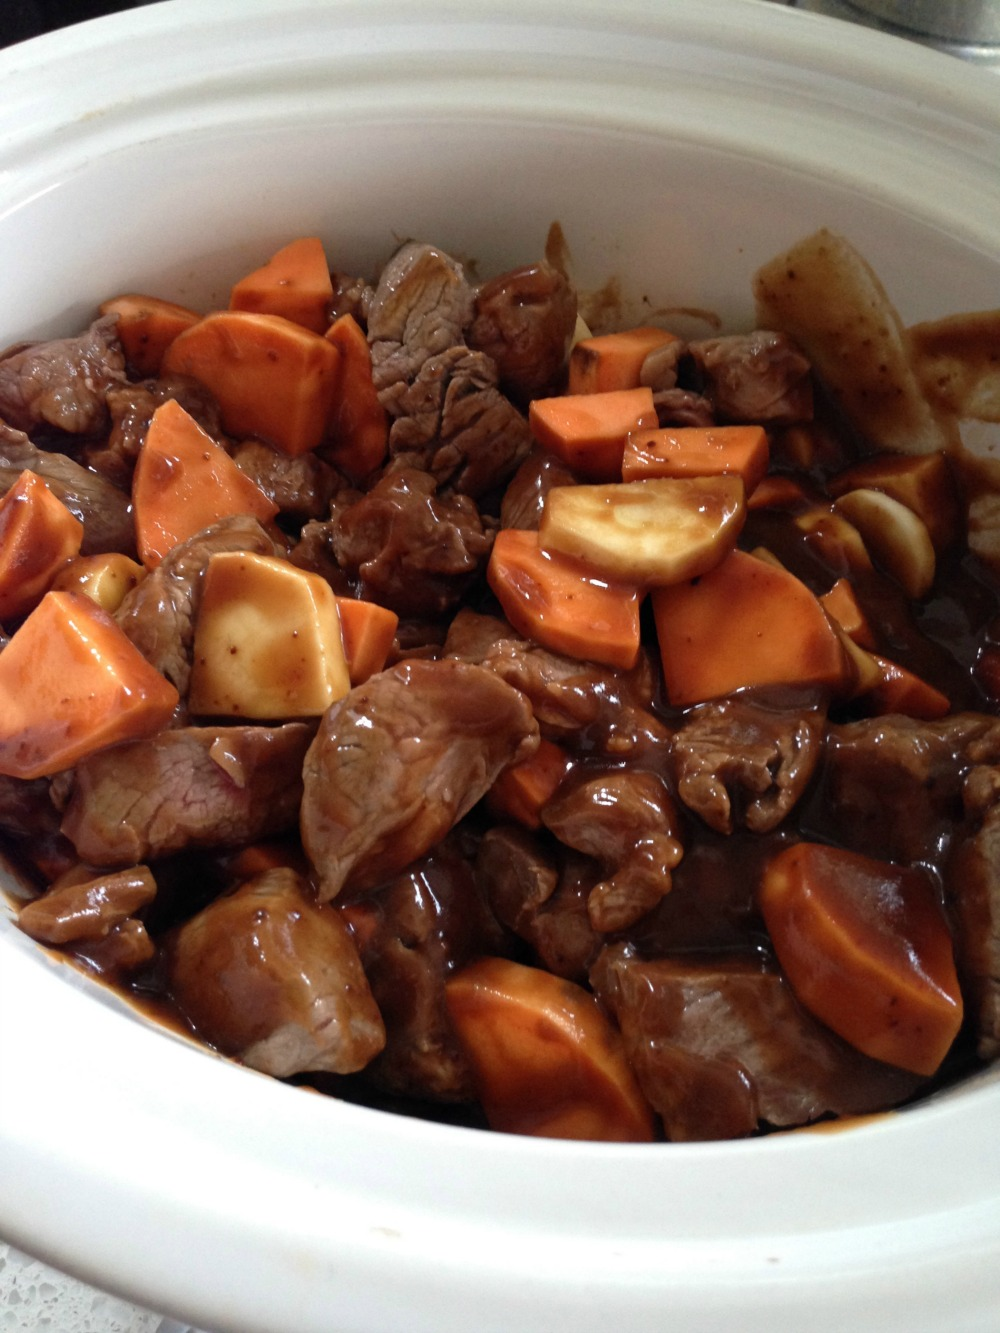 Stew ready for cooking